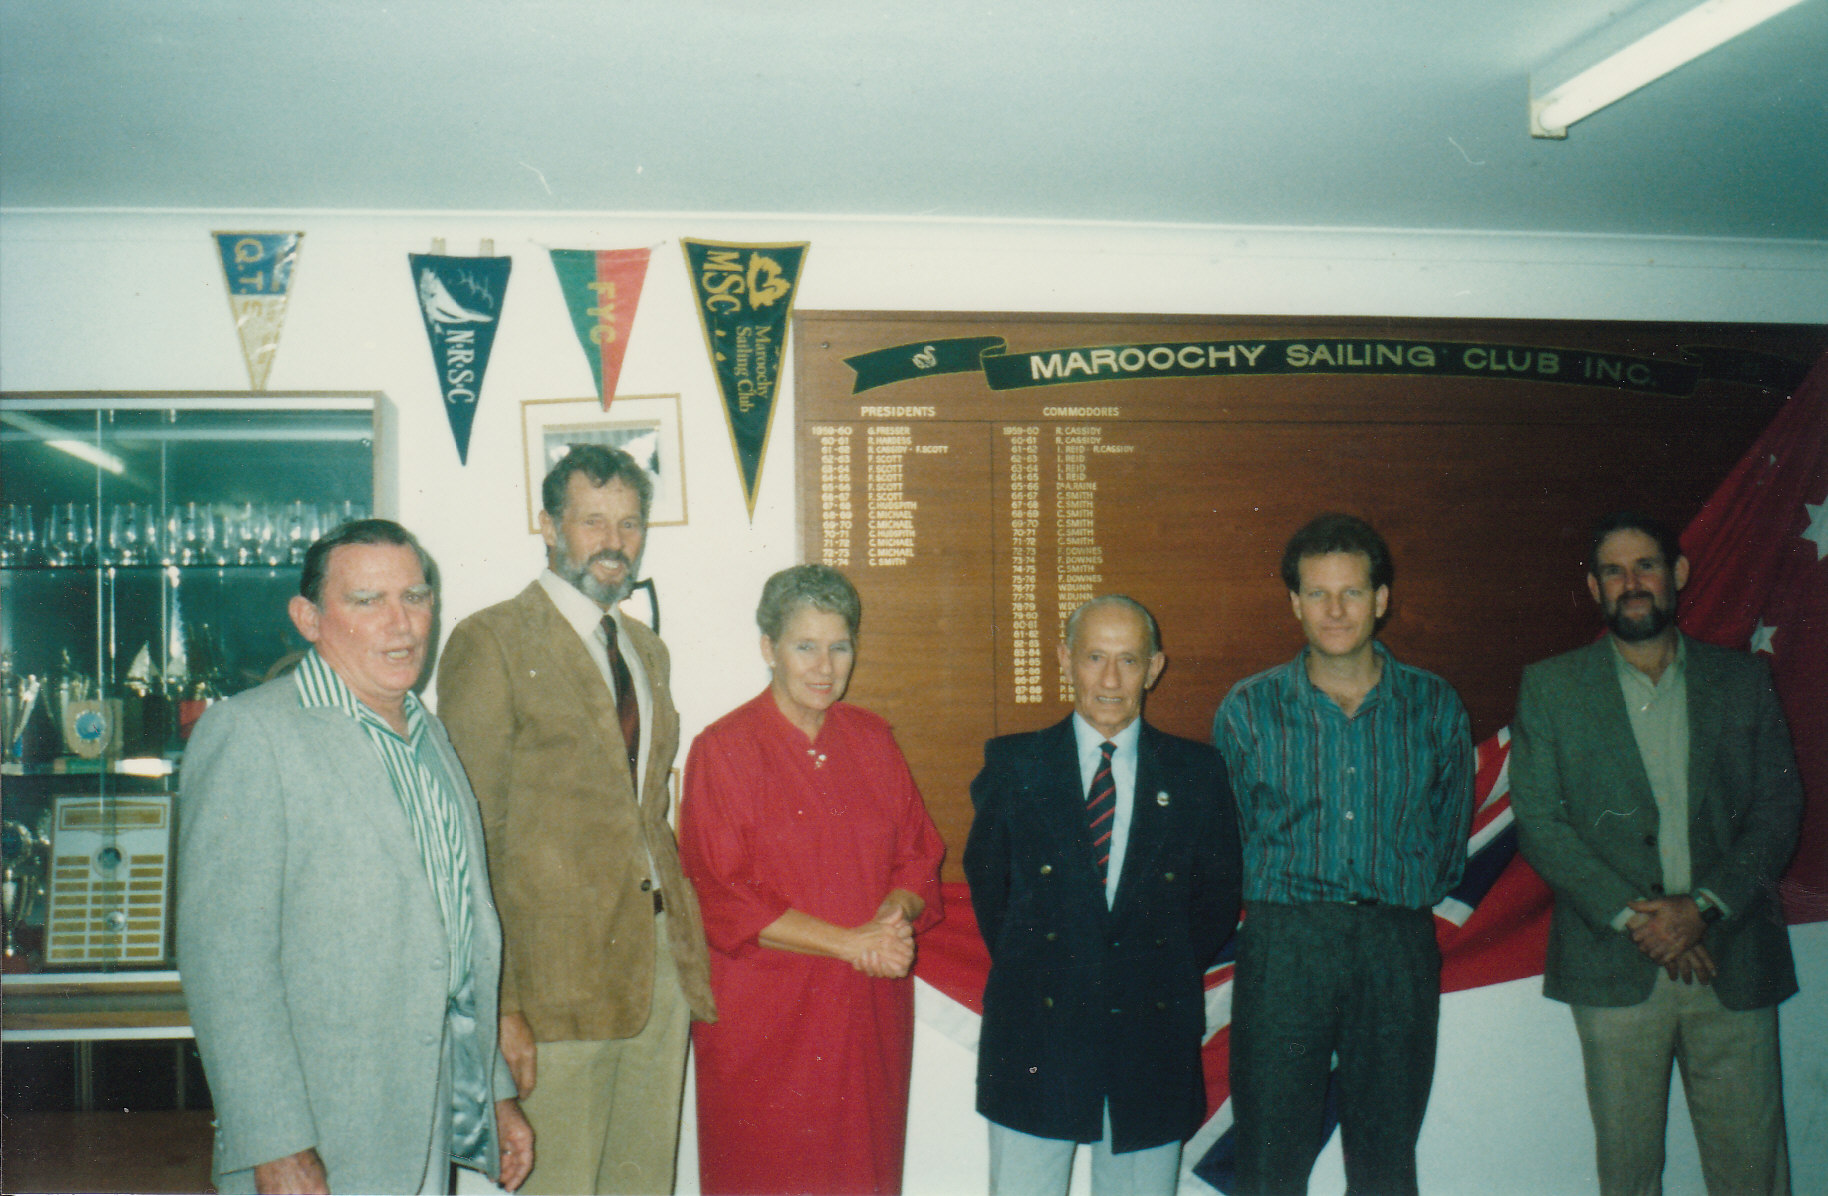 Unveiling the Honour Board, 1989 : Commodores pAST & pRESENT - MAX dUNN, fRED dOWNES, eSTELLE hODGINS, cHARLES sMITH, mIKE bOURKE, pETER bRODIE